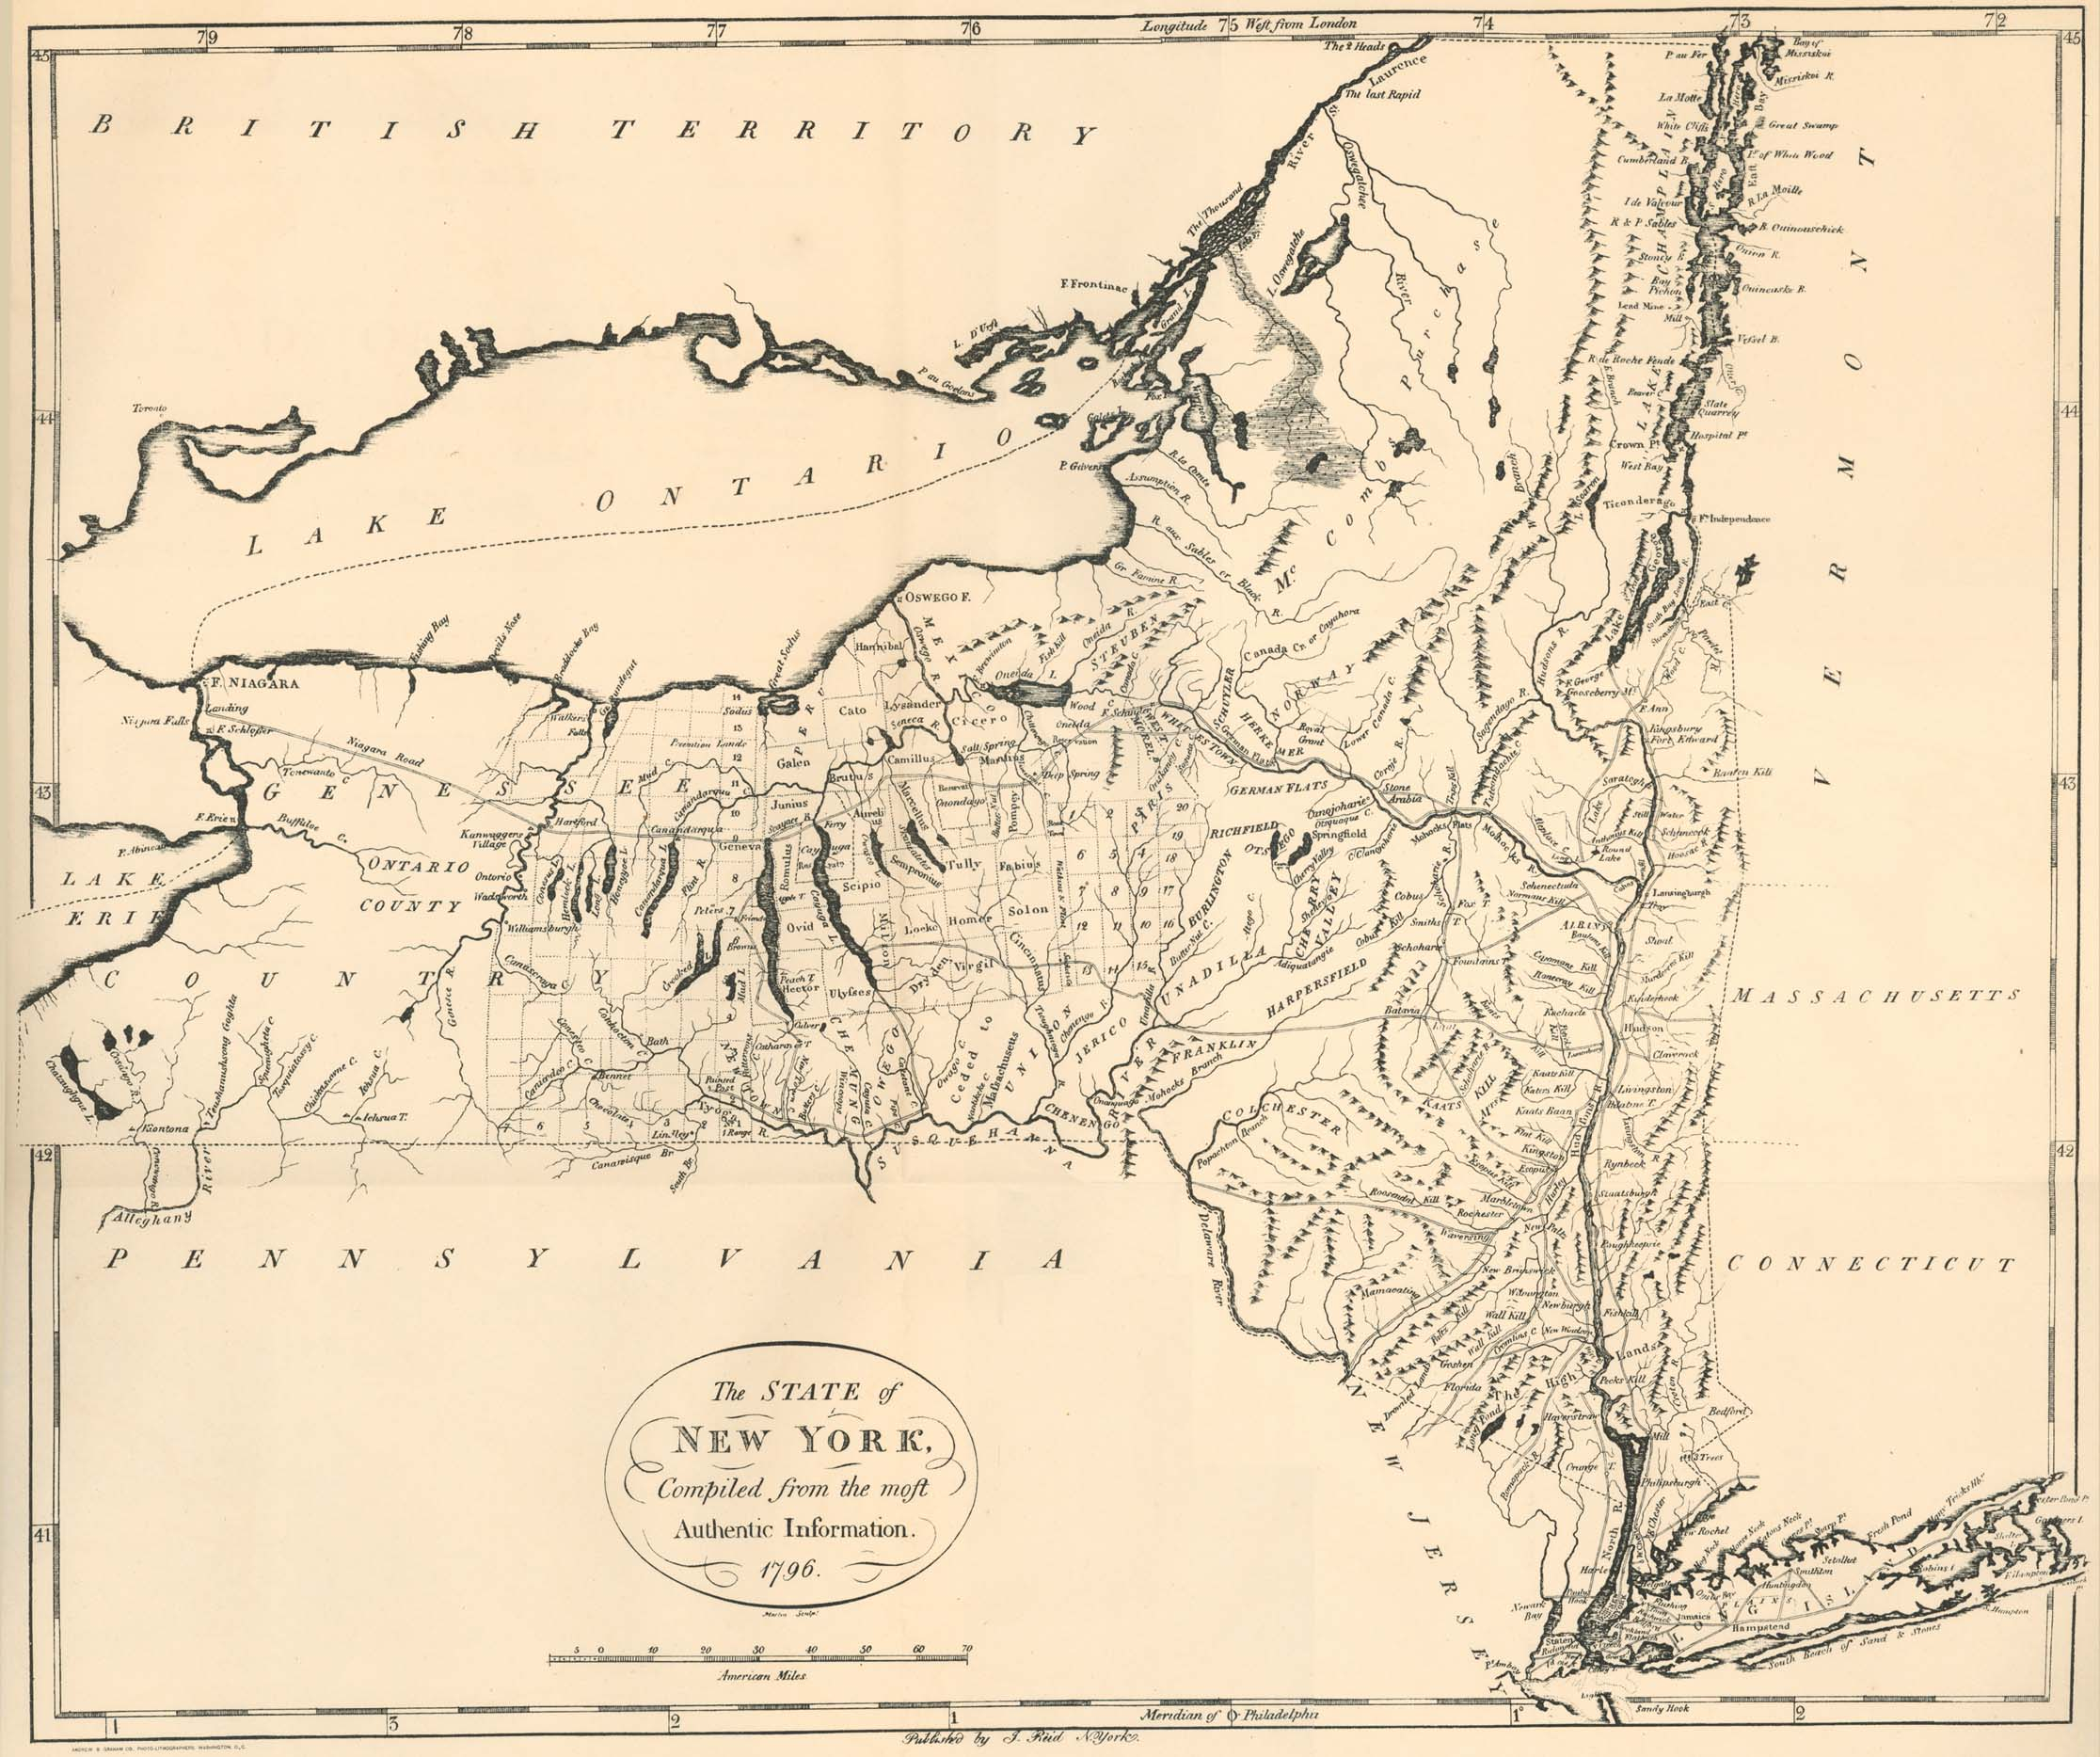 New york livingston county leicester - 1796 New York State Map